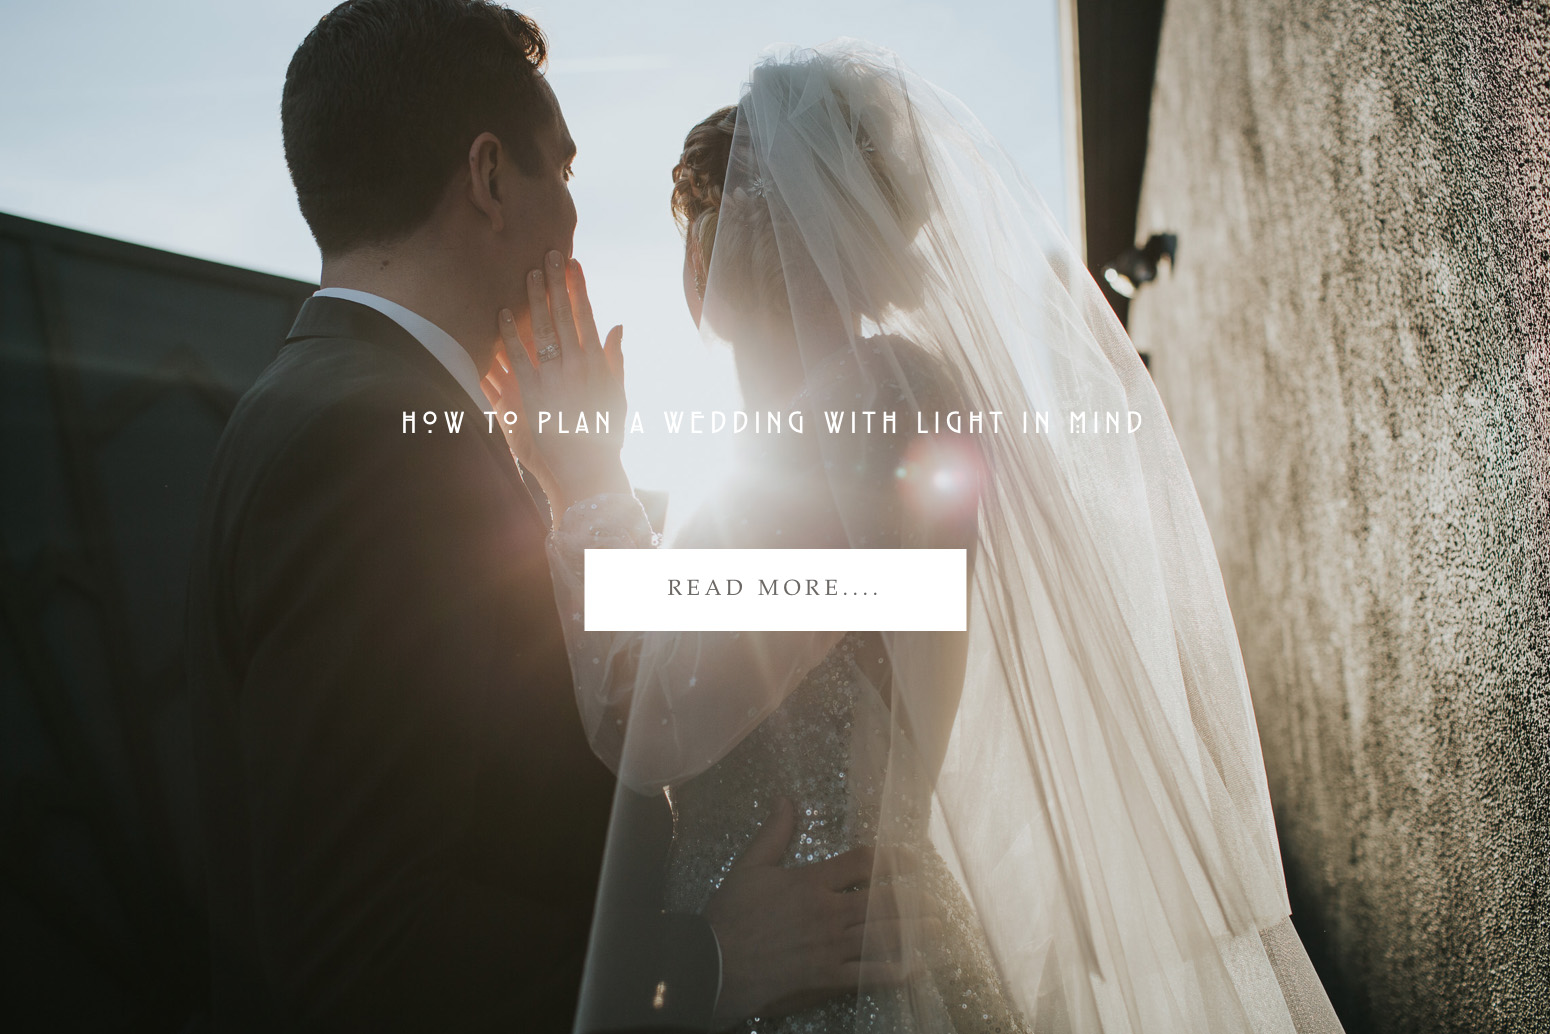 Also check out what one of my favorite photographers,  Joel & Justyna , have written about the importance of light on your wedding day!